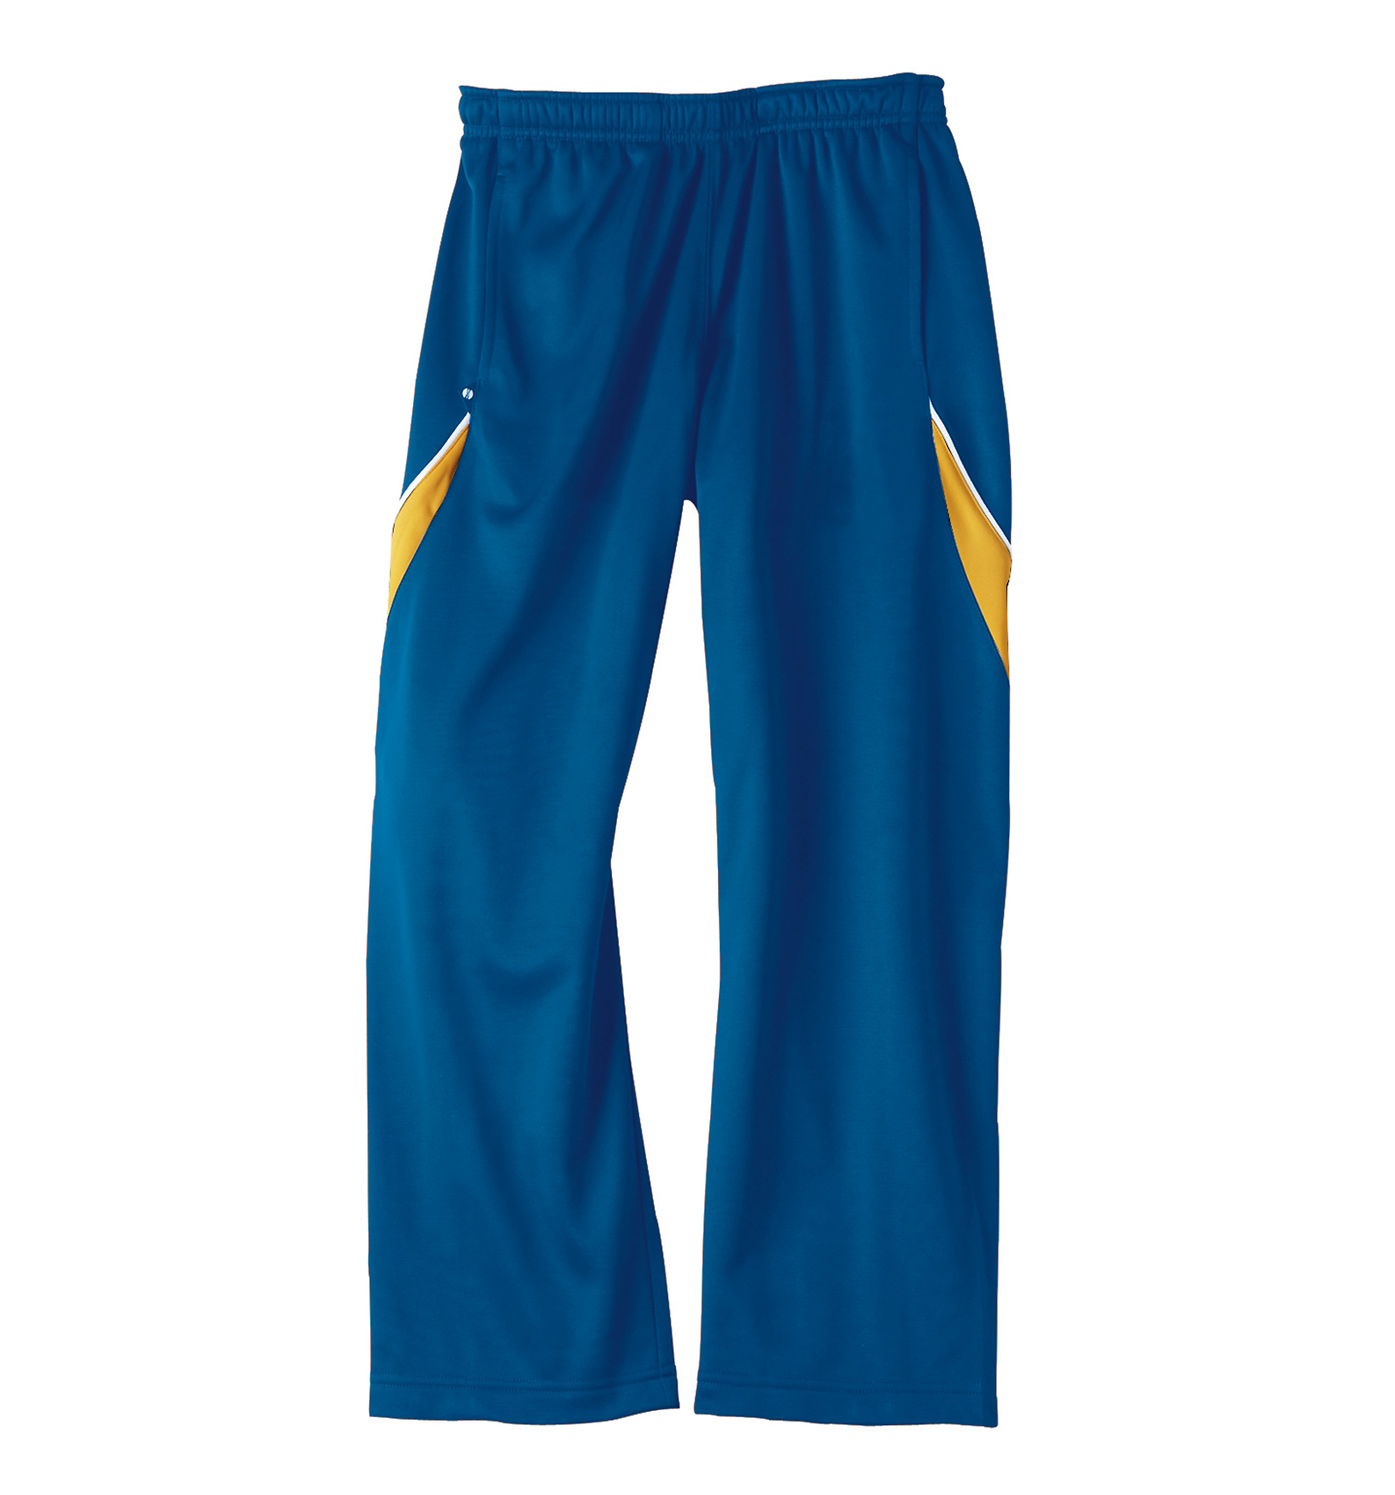 9287 holloway adult endurance pant